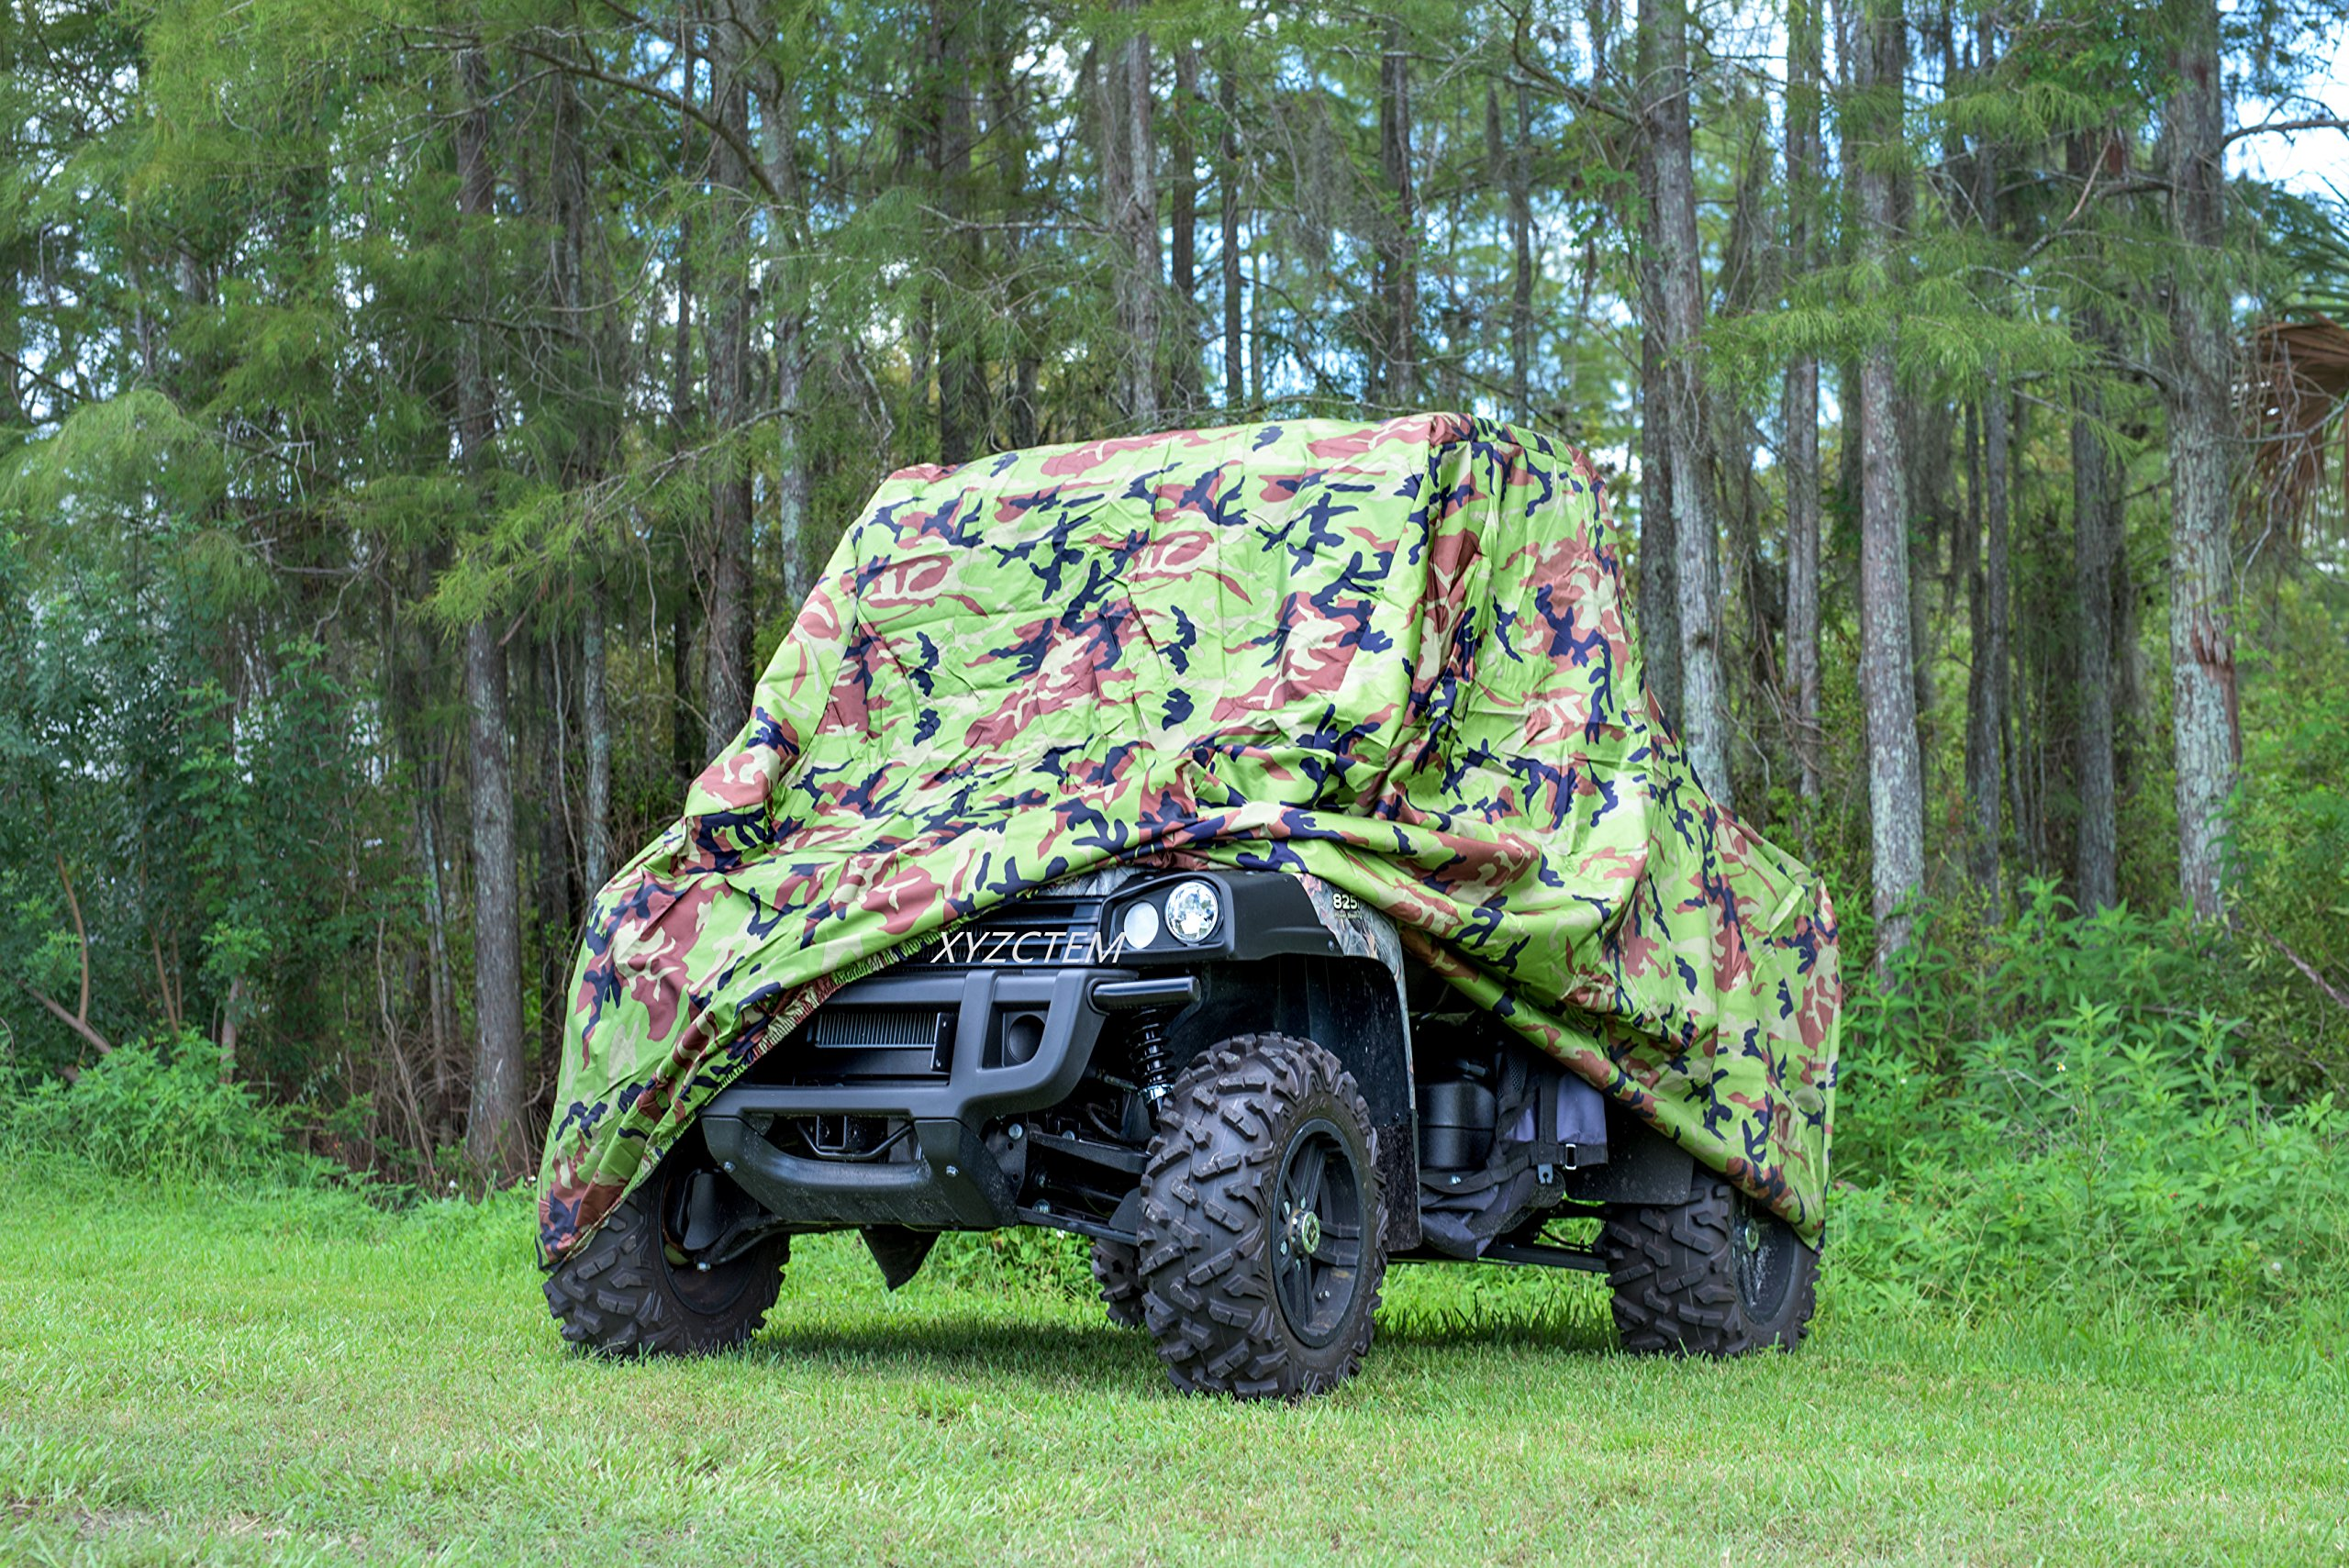 XYZCTEM UTV Cover with Heavy Duty Oxford Waterproof Material, 114.17'' x 59.06'' x 74.80'' (290 150 190cm) Included Storage Bag. Protects UTV From Rain, Hail, Dust, Snow, Sleet, and Sun (Camo) by XYZCTEM (Image #3)